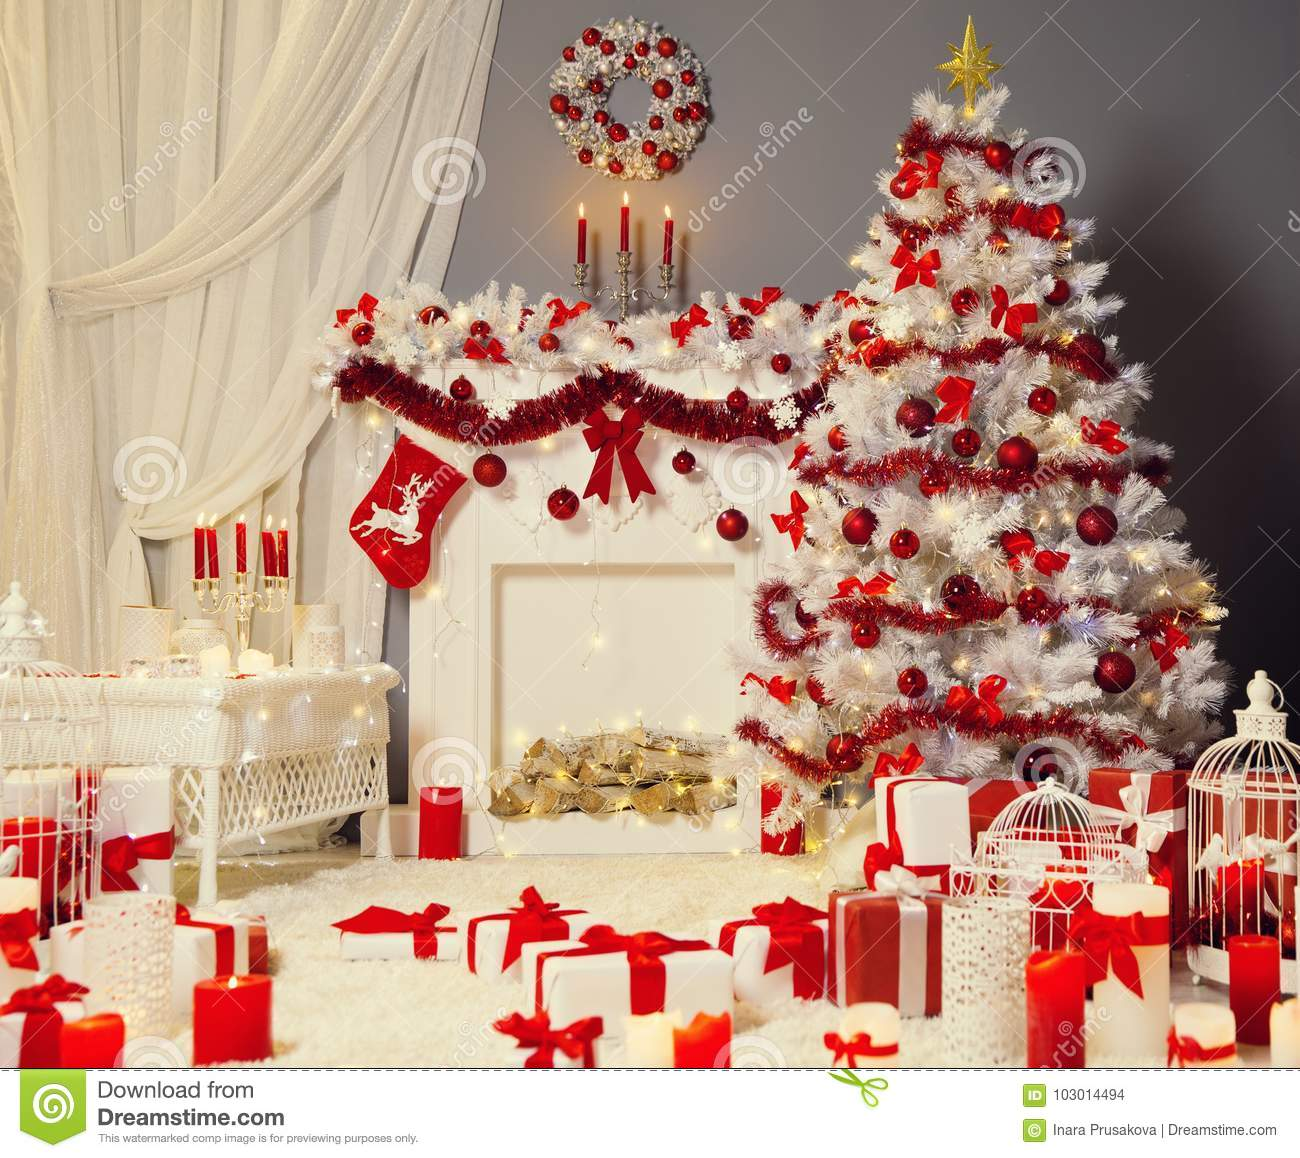 Chemin e d 39 arbre de no l salon de no l d coration d 39 endroit du feu photo stock image du - Deco noel salon ...